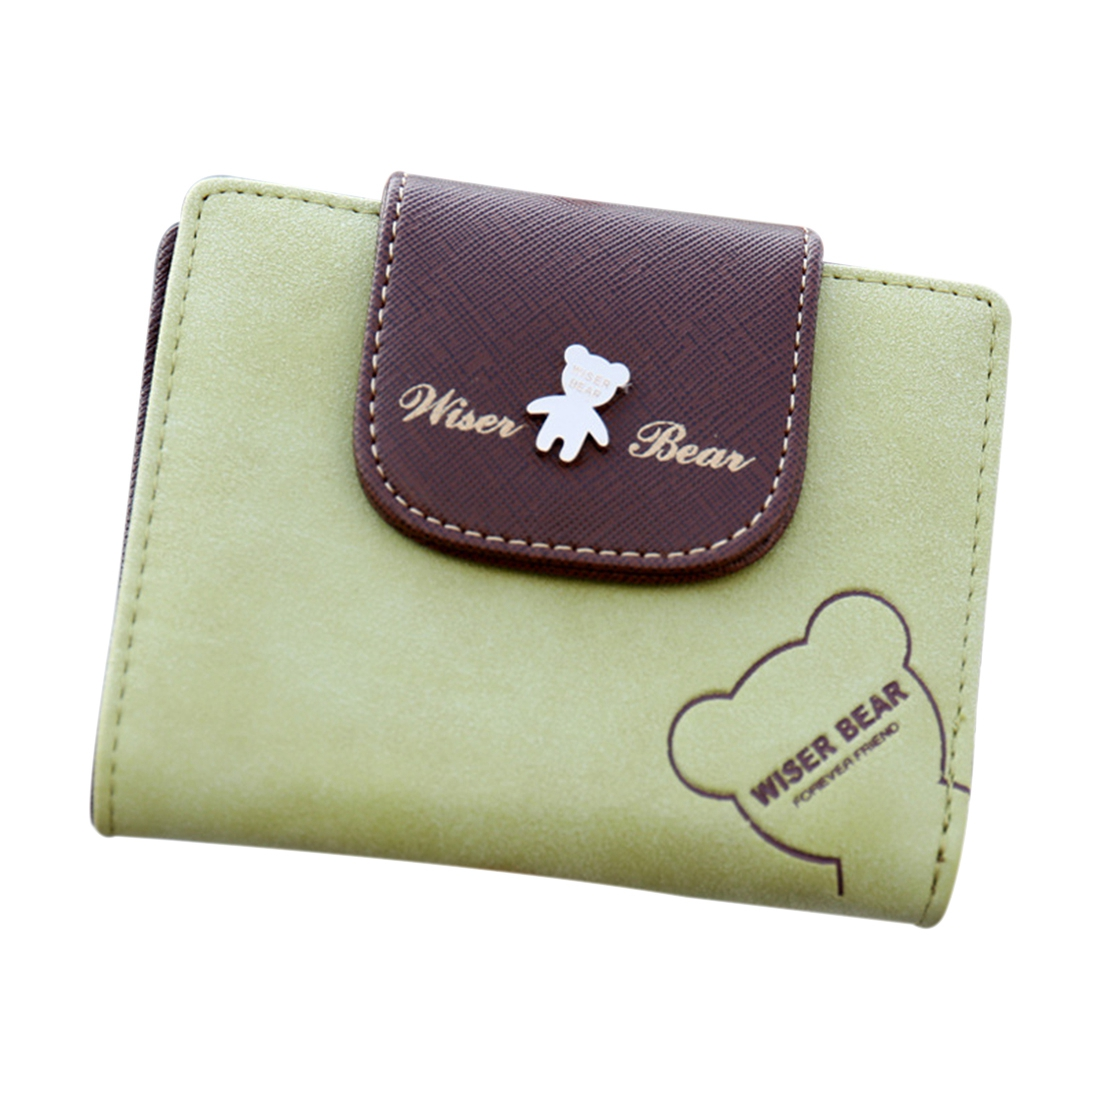 VSEN Fashion Lovely Bear Wallet Female Leather Small Change Clasp Purse Money Card Coin Holder Girls Women Purses(Green)